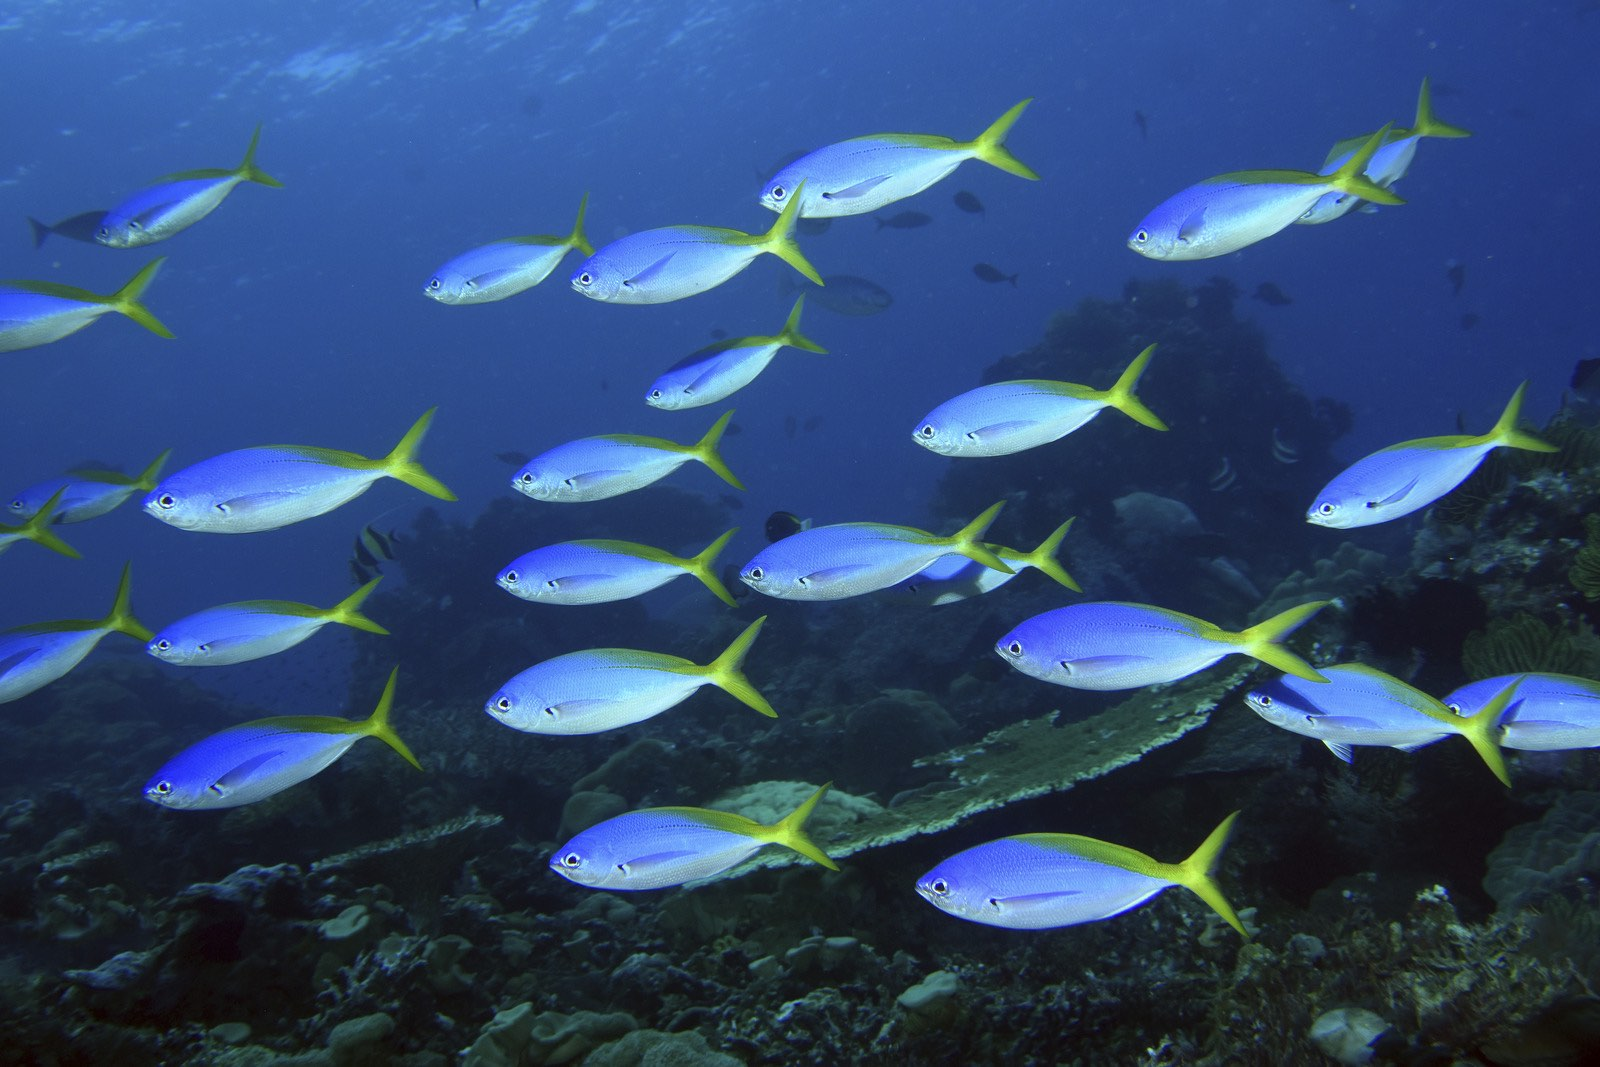 Yellow back fusiliers swim together in waters near Timor-Leste, Atauro Island. Photo by Gerry Allen.